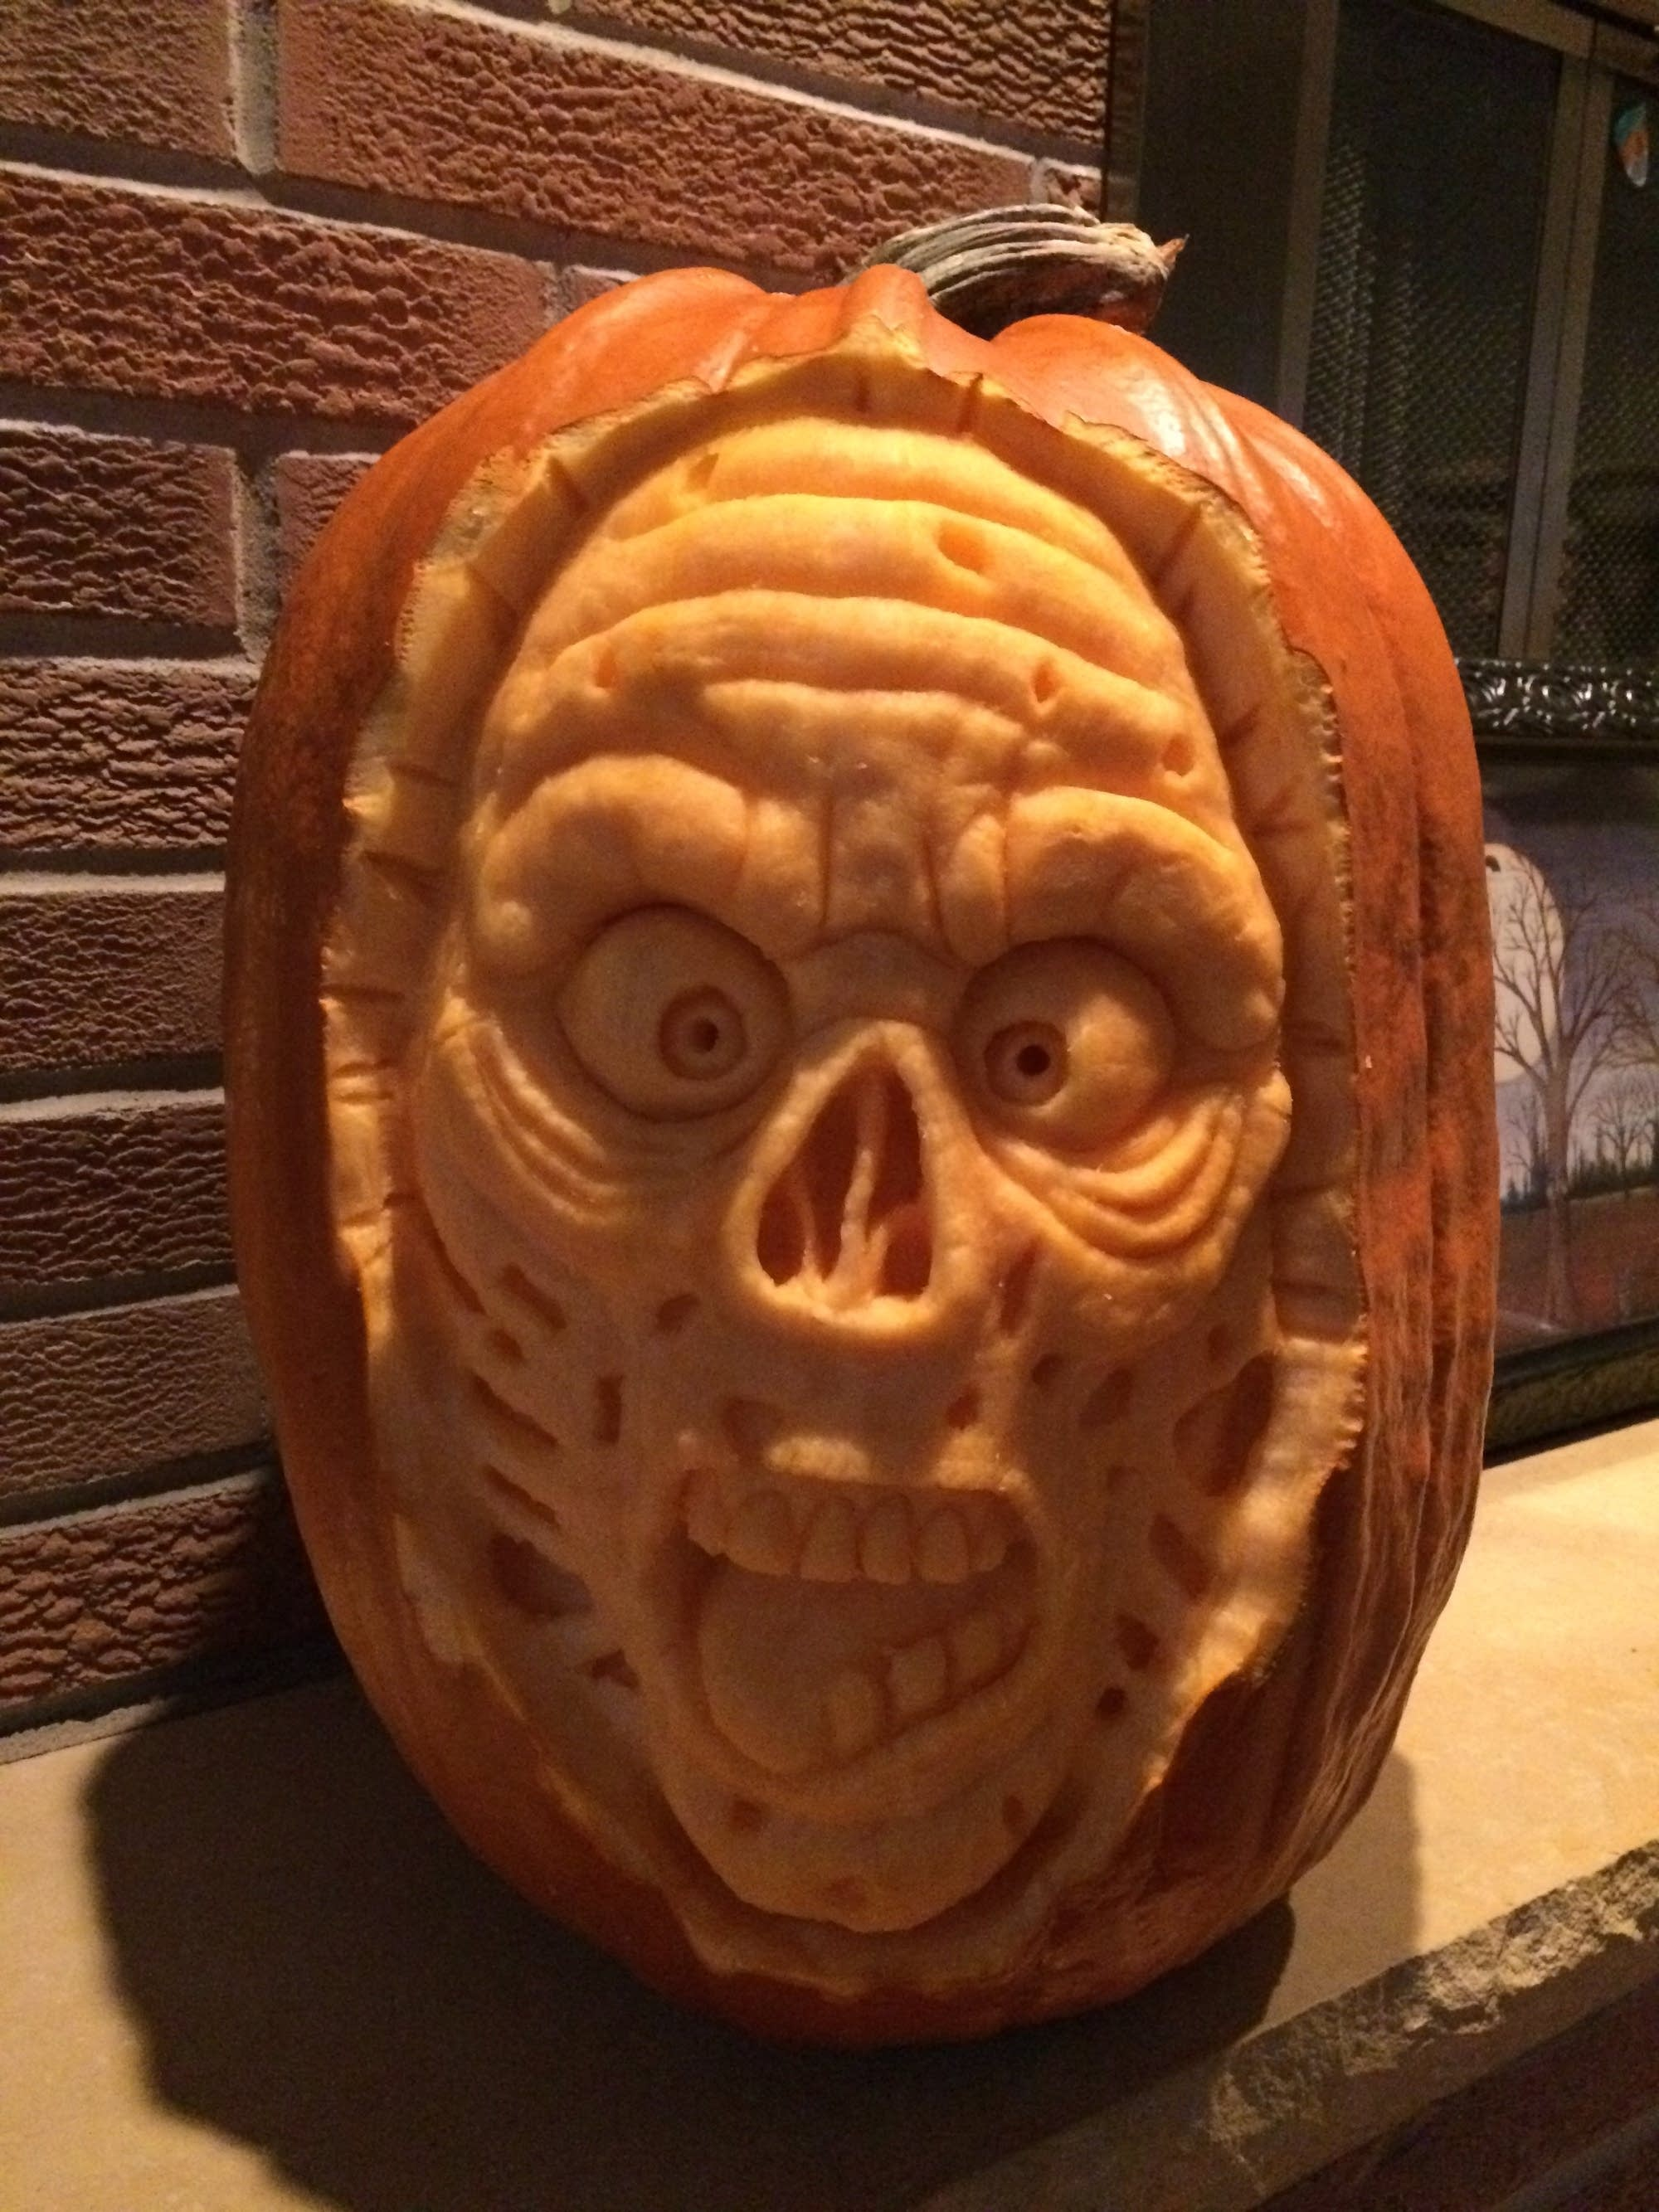 how to carve like a king this halloween season | mpr news